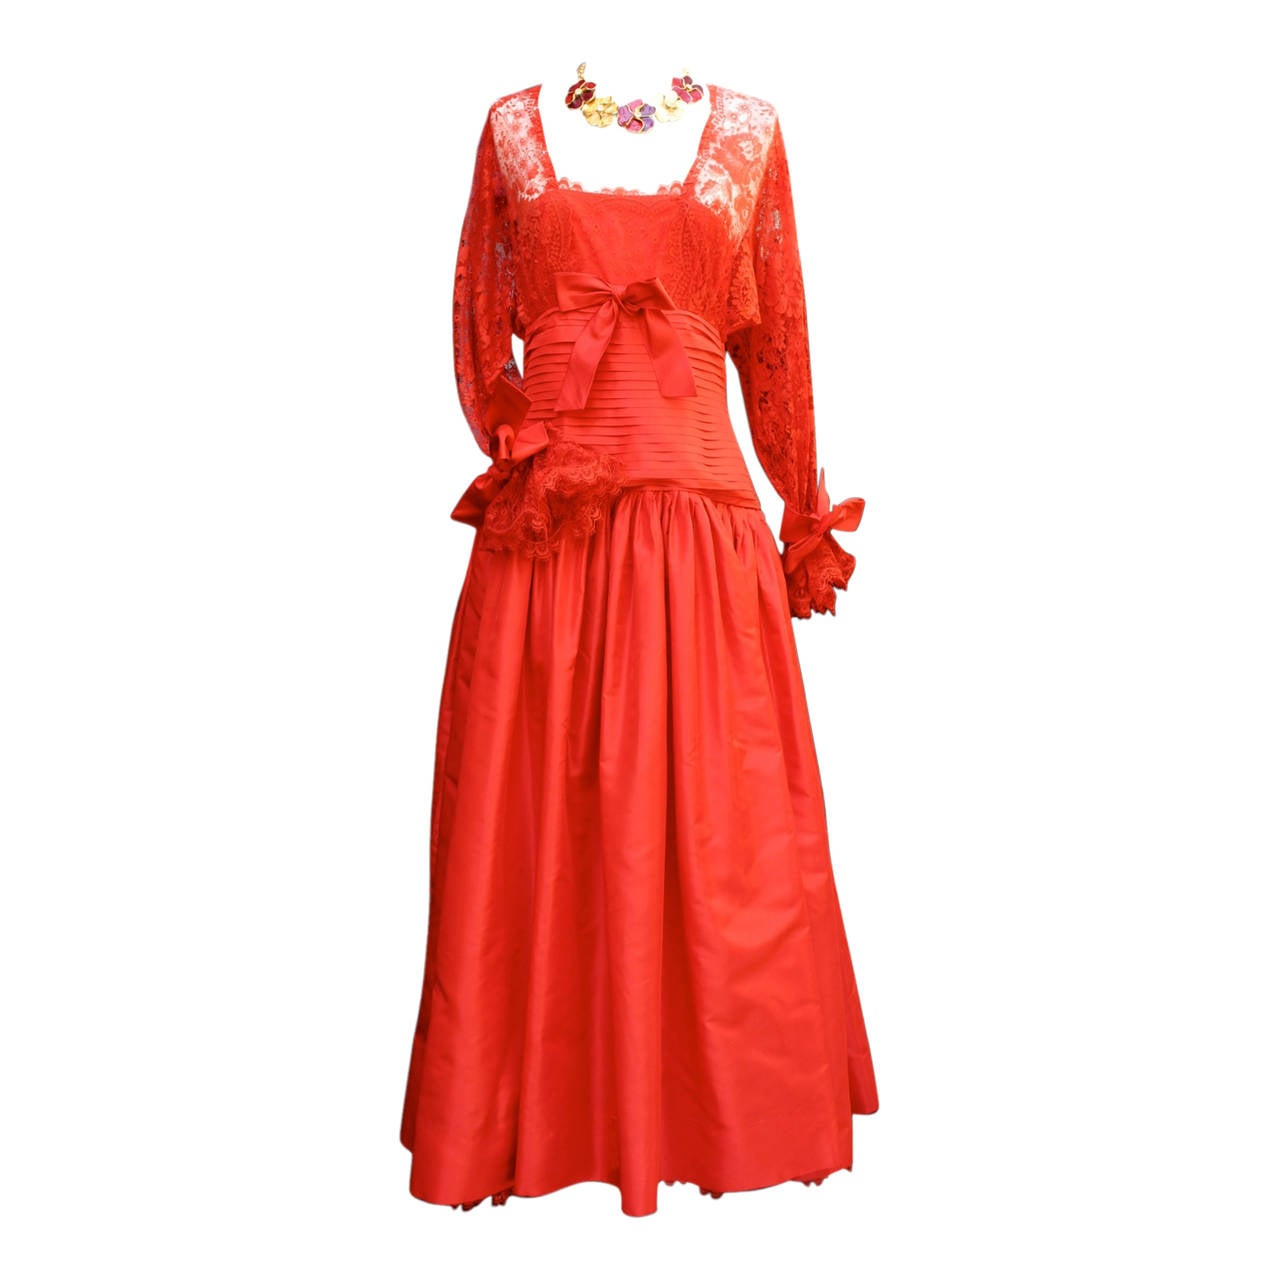 Fall 1980 Nina Ricci Haute Boutique Red Taffeta and Lace Evening Dress